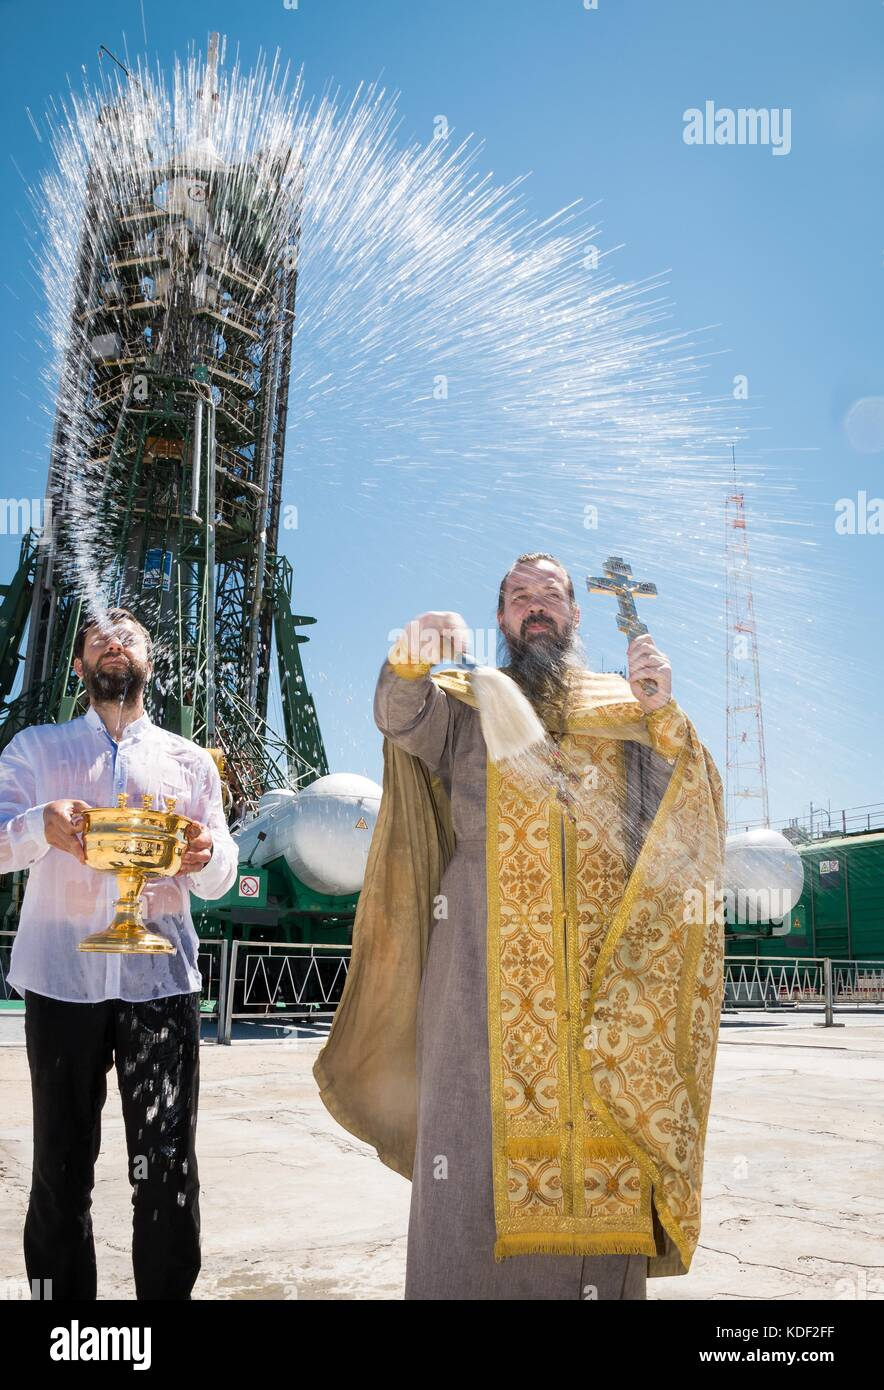 An Orthodox Priest blesses the Soyuz MS-05 spacecraft during a traditional pre-launch ceremony at the Baikonur Cosmodrome - Stock Image